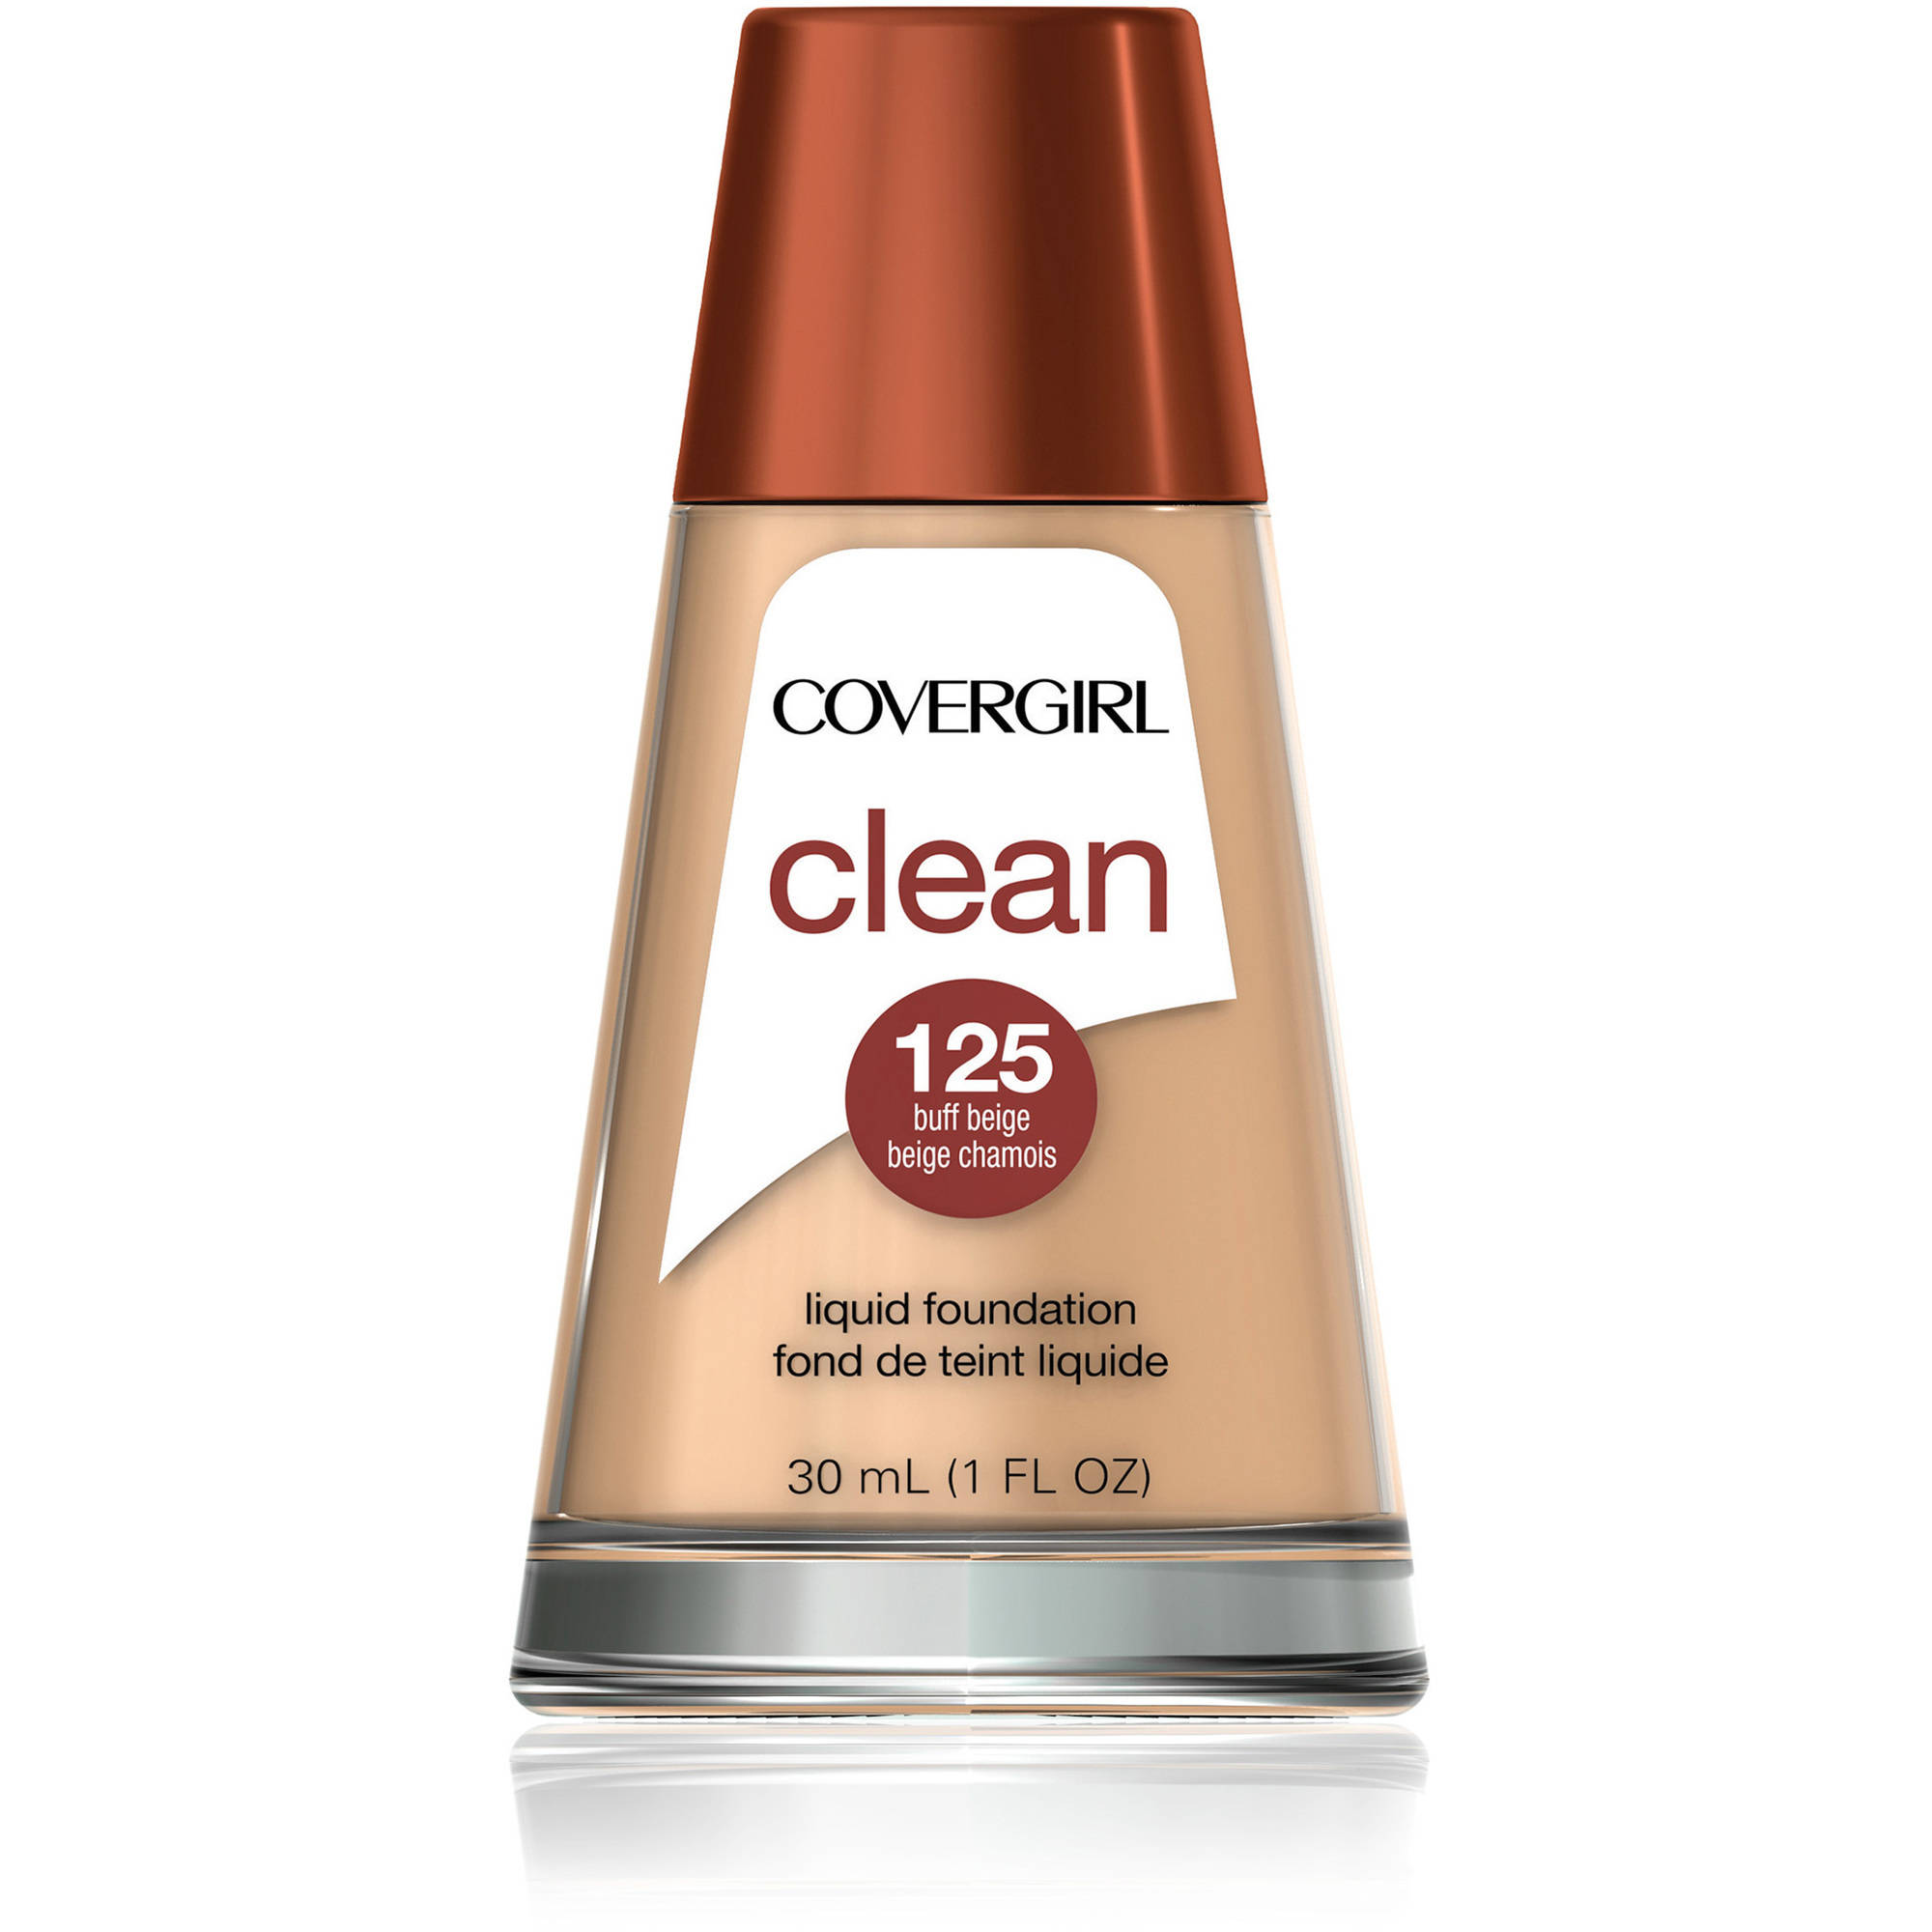 COVERGIRL Clean Liquid Foundation, 125 Buff Beige, 1 fl oz